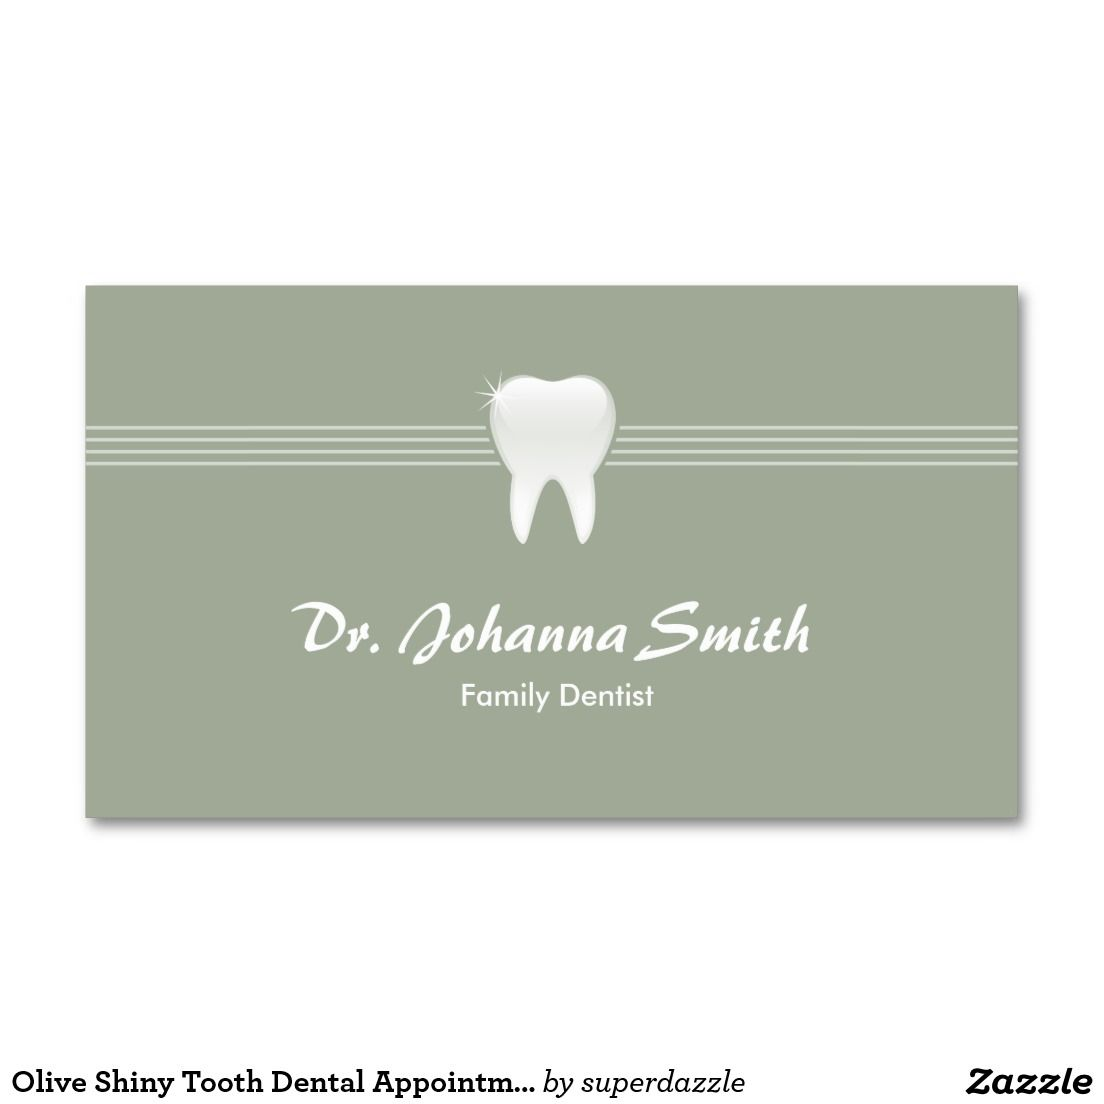 Shiny Tooth Dental Appointment Olive Color Business Card Template - Appointment business card template